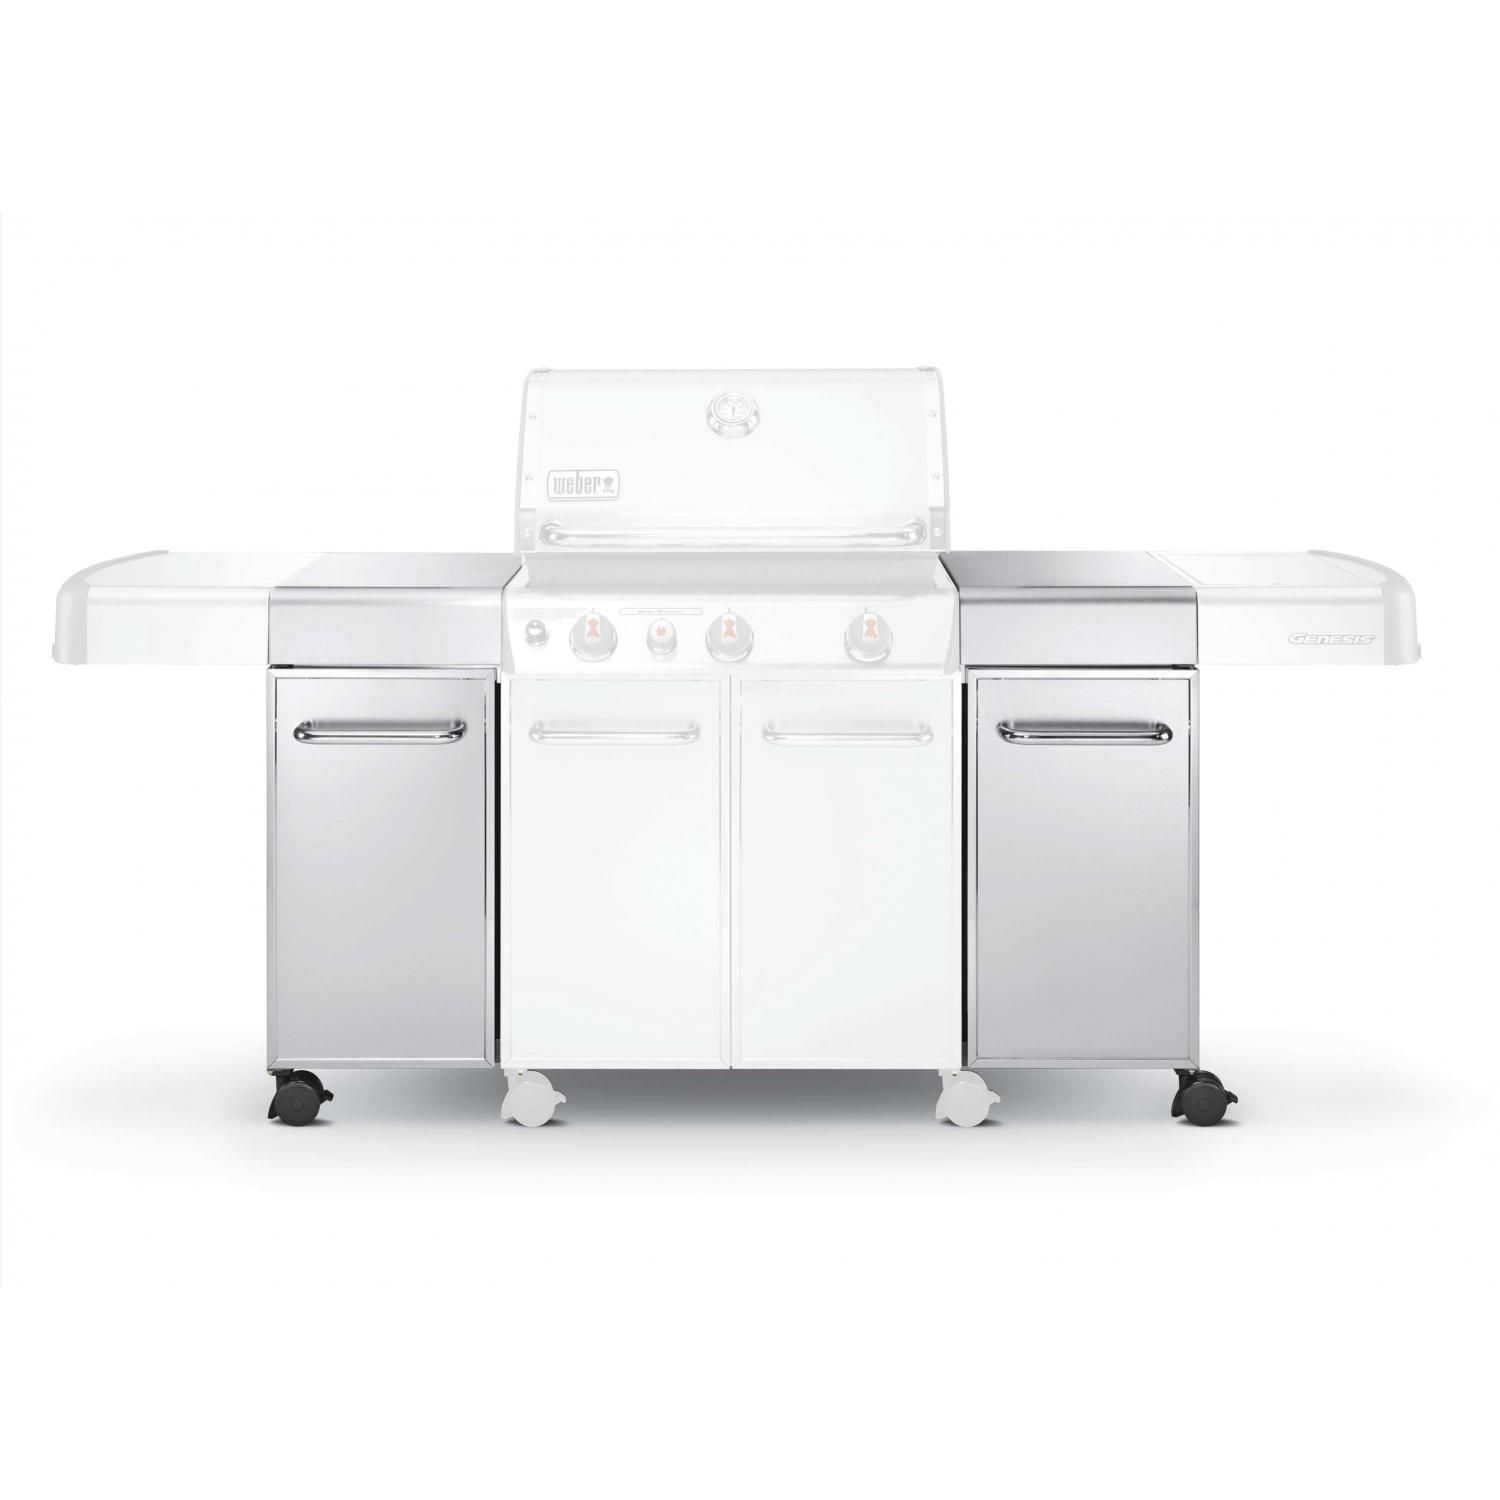 Weber Genesis Island Cabinetry For Genesis S 300 Series Gas Grills